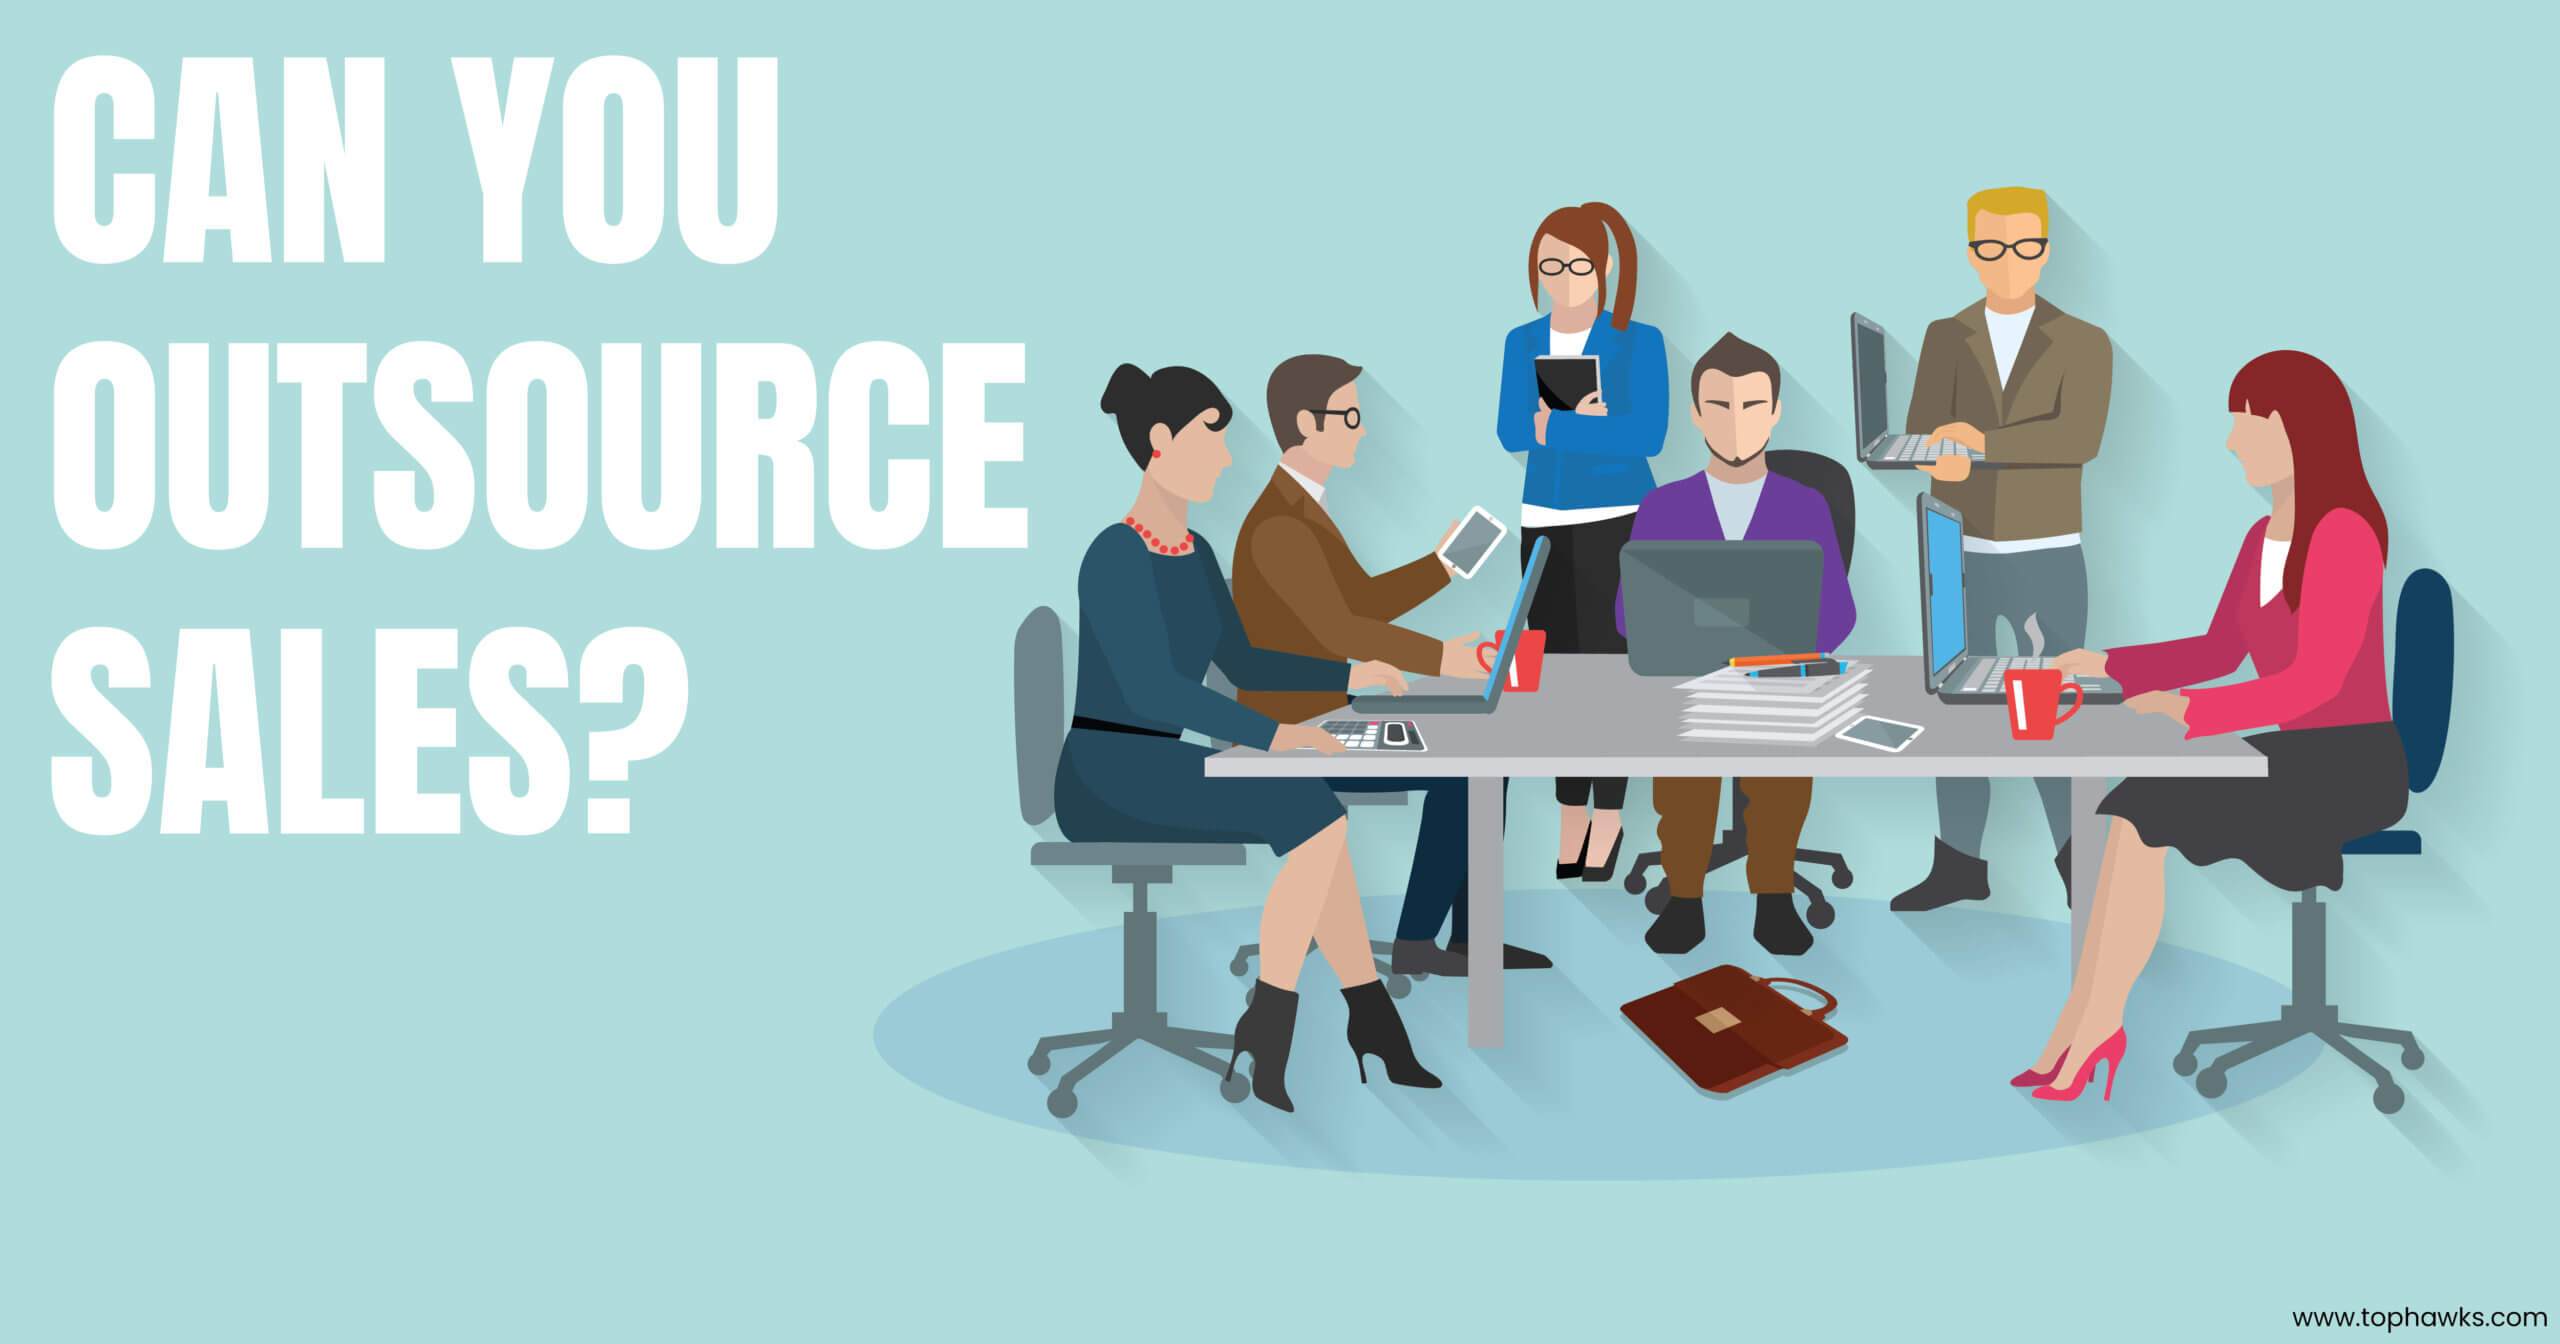 Can you Outsource Sales?